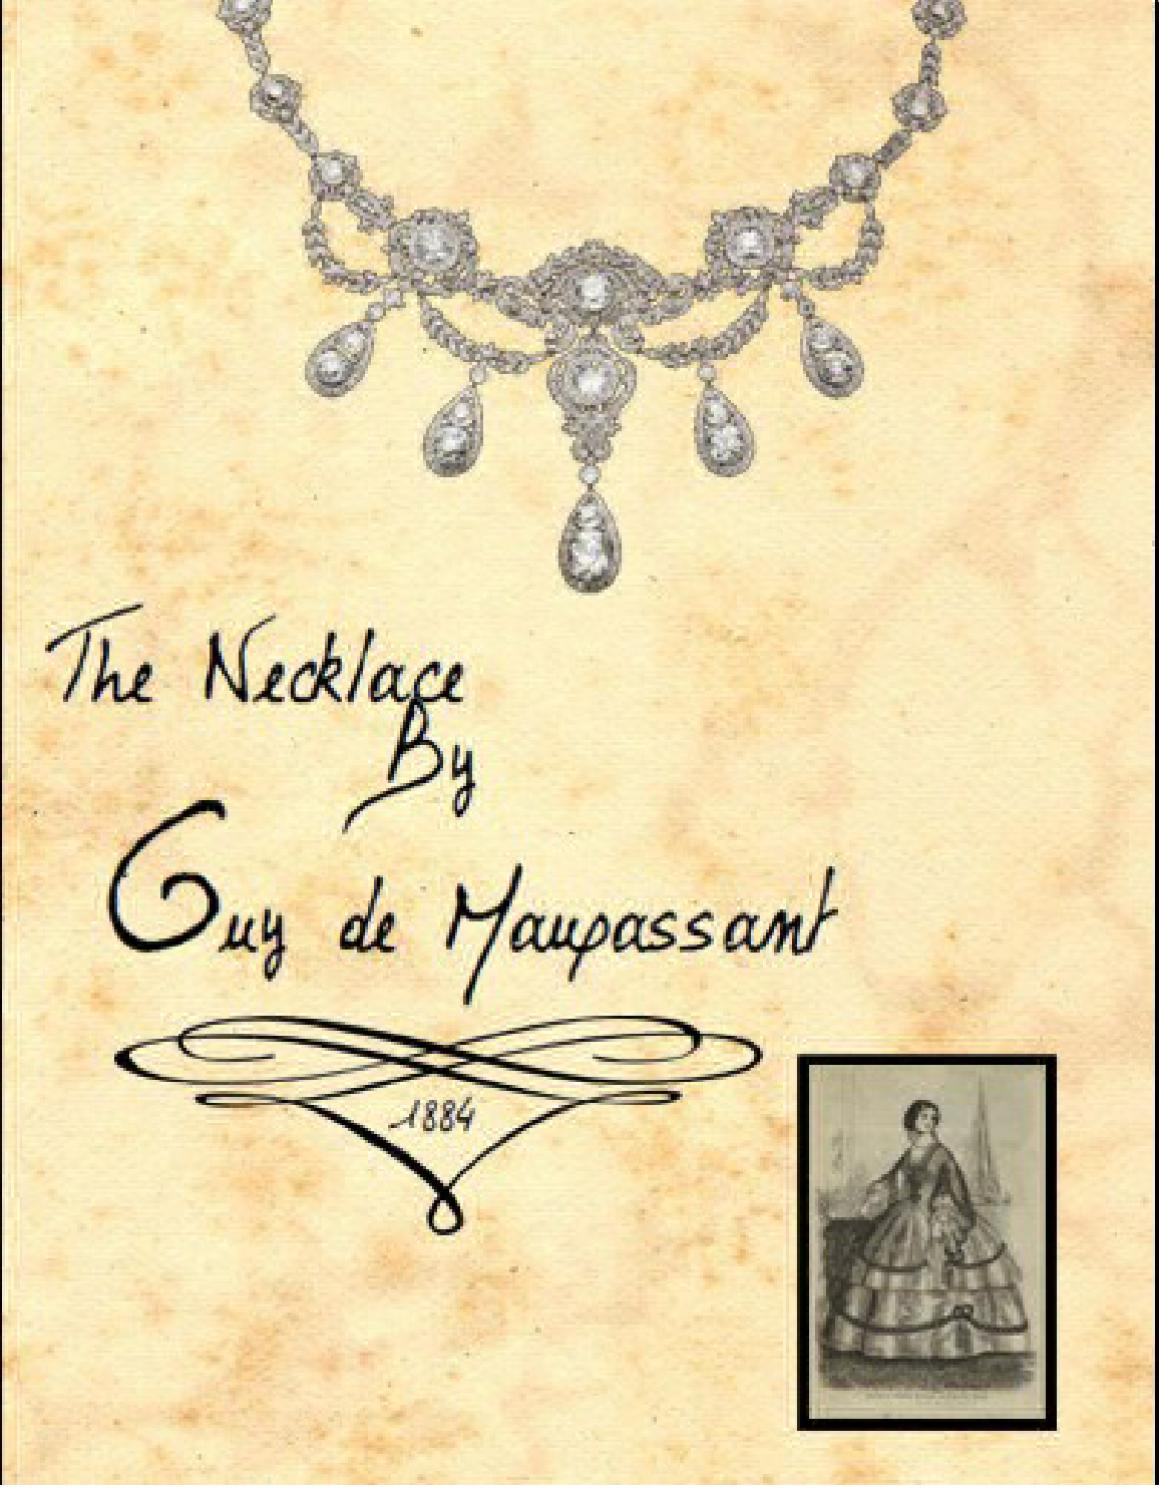 The Necklace by Guy de Maupassant by Penny Watts - Issuu